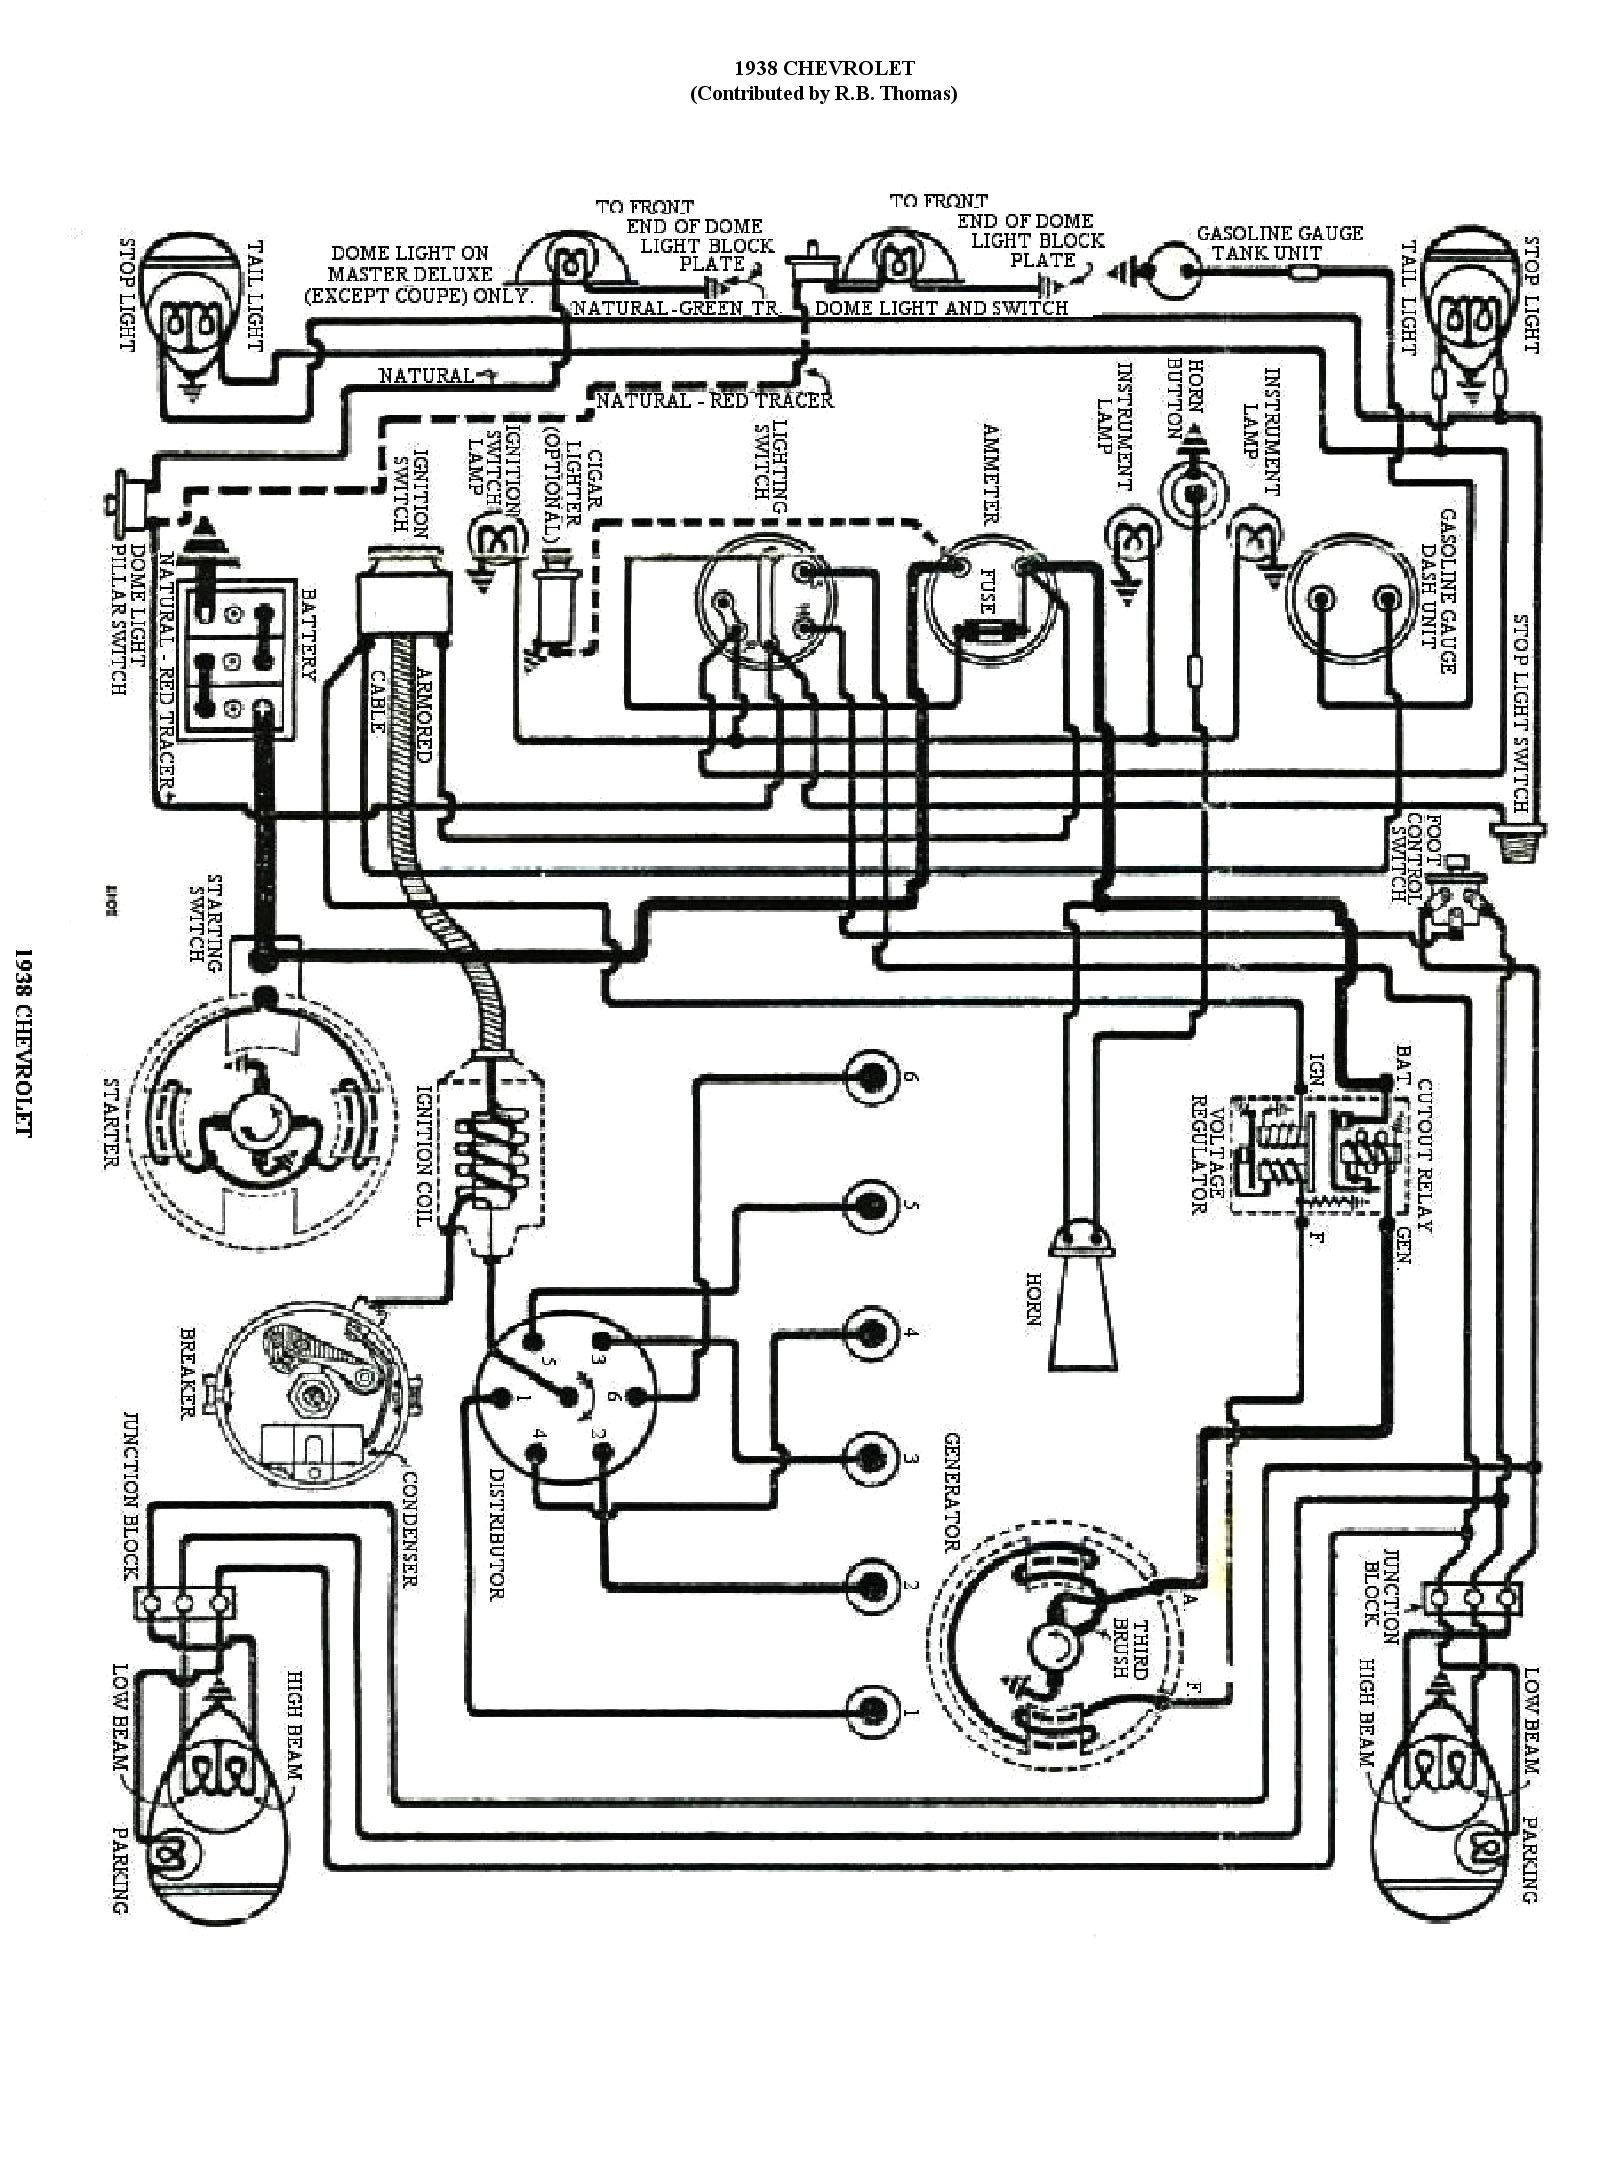 38wiring chevy wiring diagrams ac wiring harness at eliteediting.co